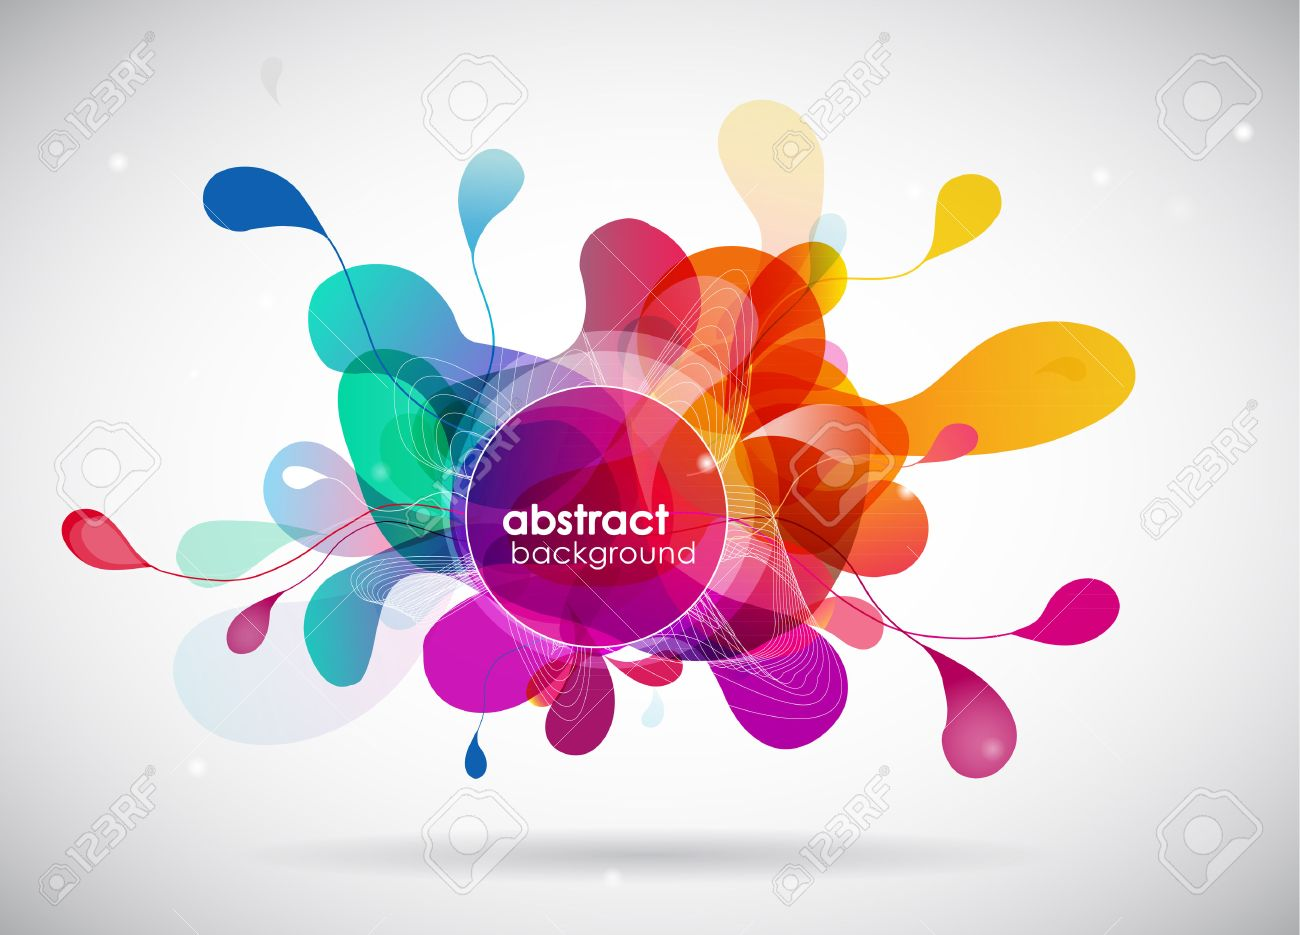 abstract colored background with circles. - 34401252